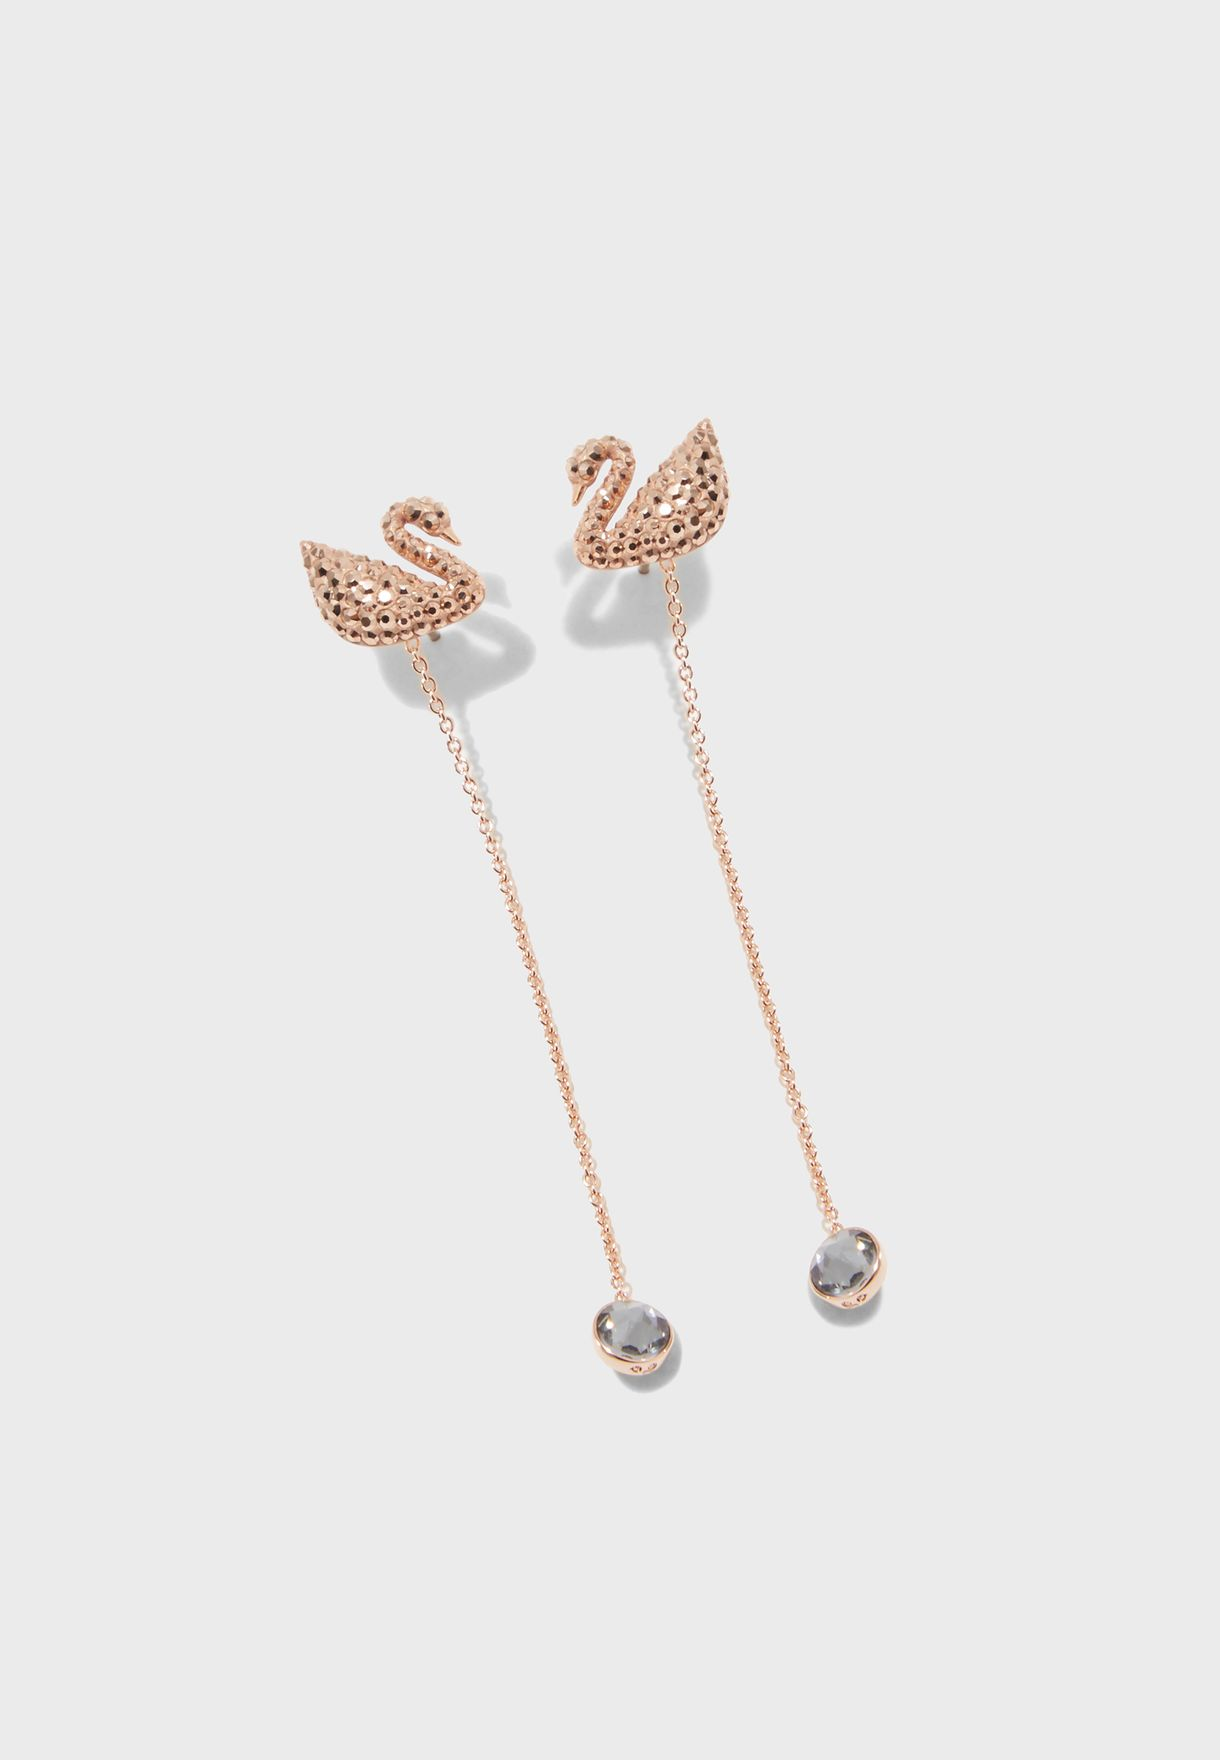 Iconic Swan Drop Earrings